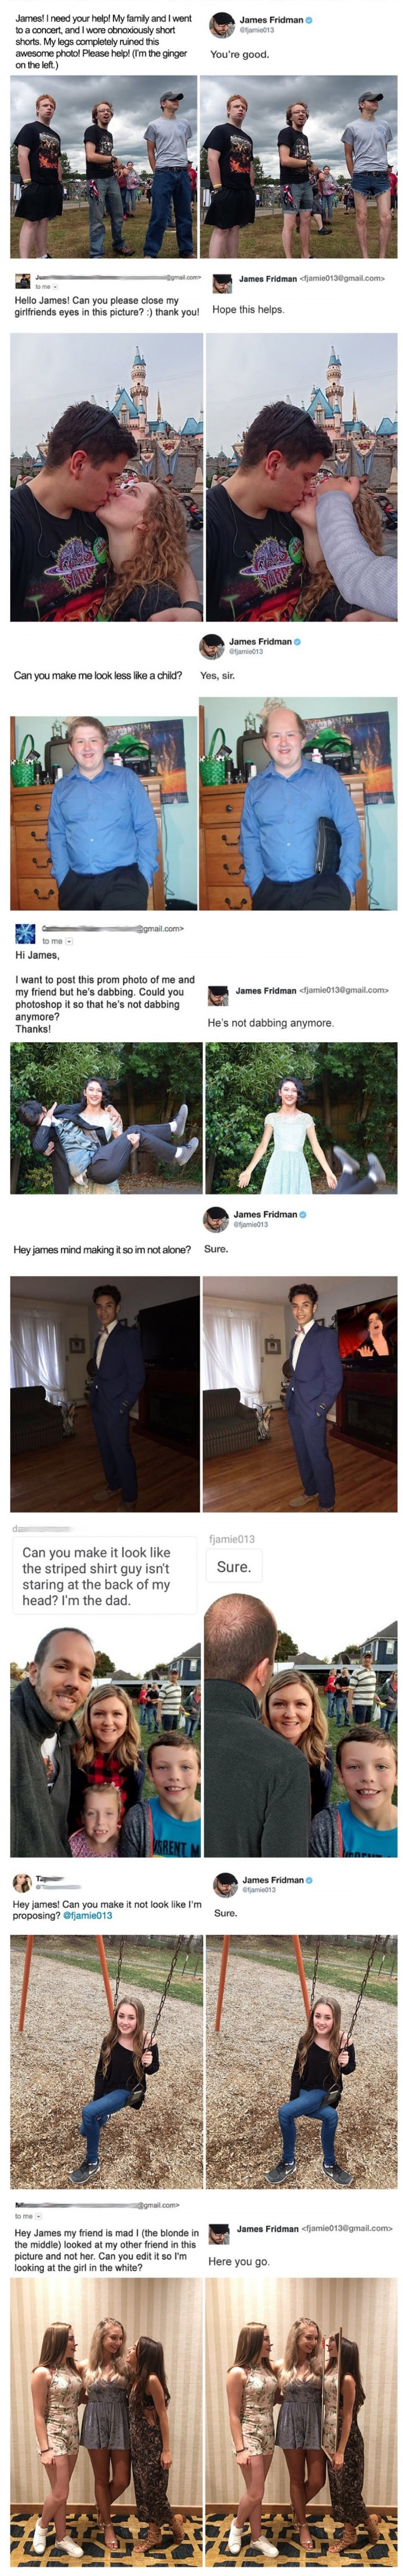 James Fridman, the great Photoshop trickster, is at it again!